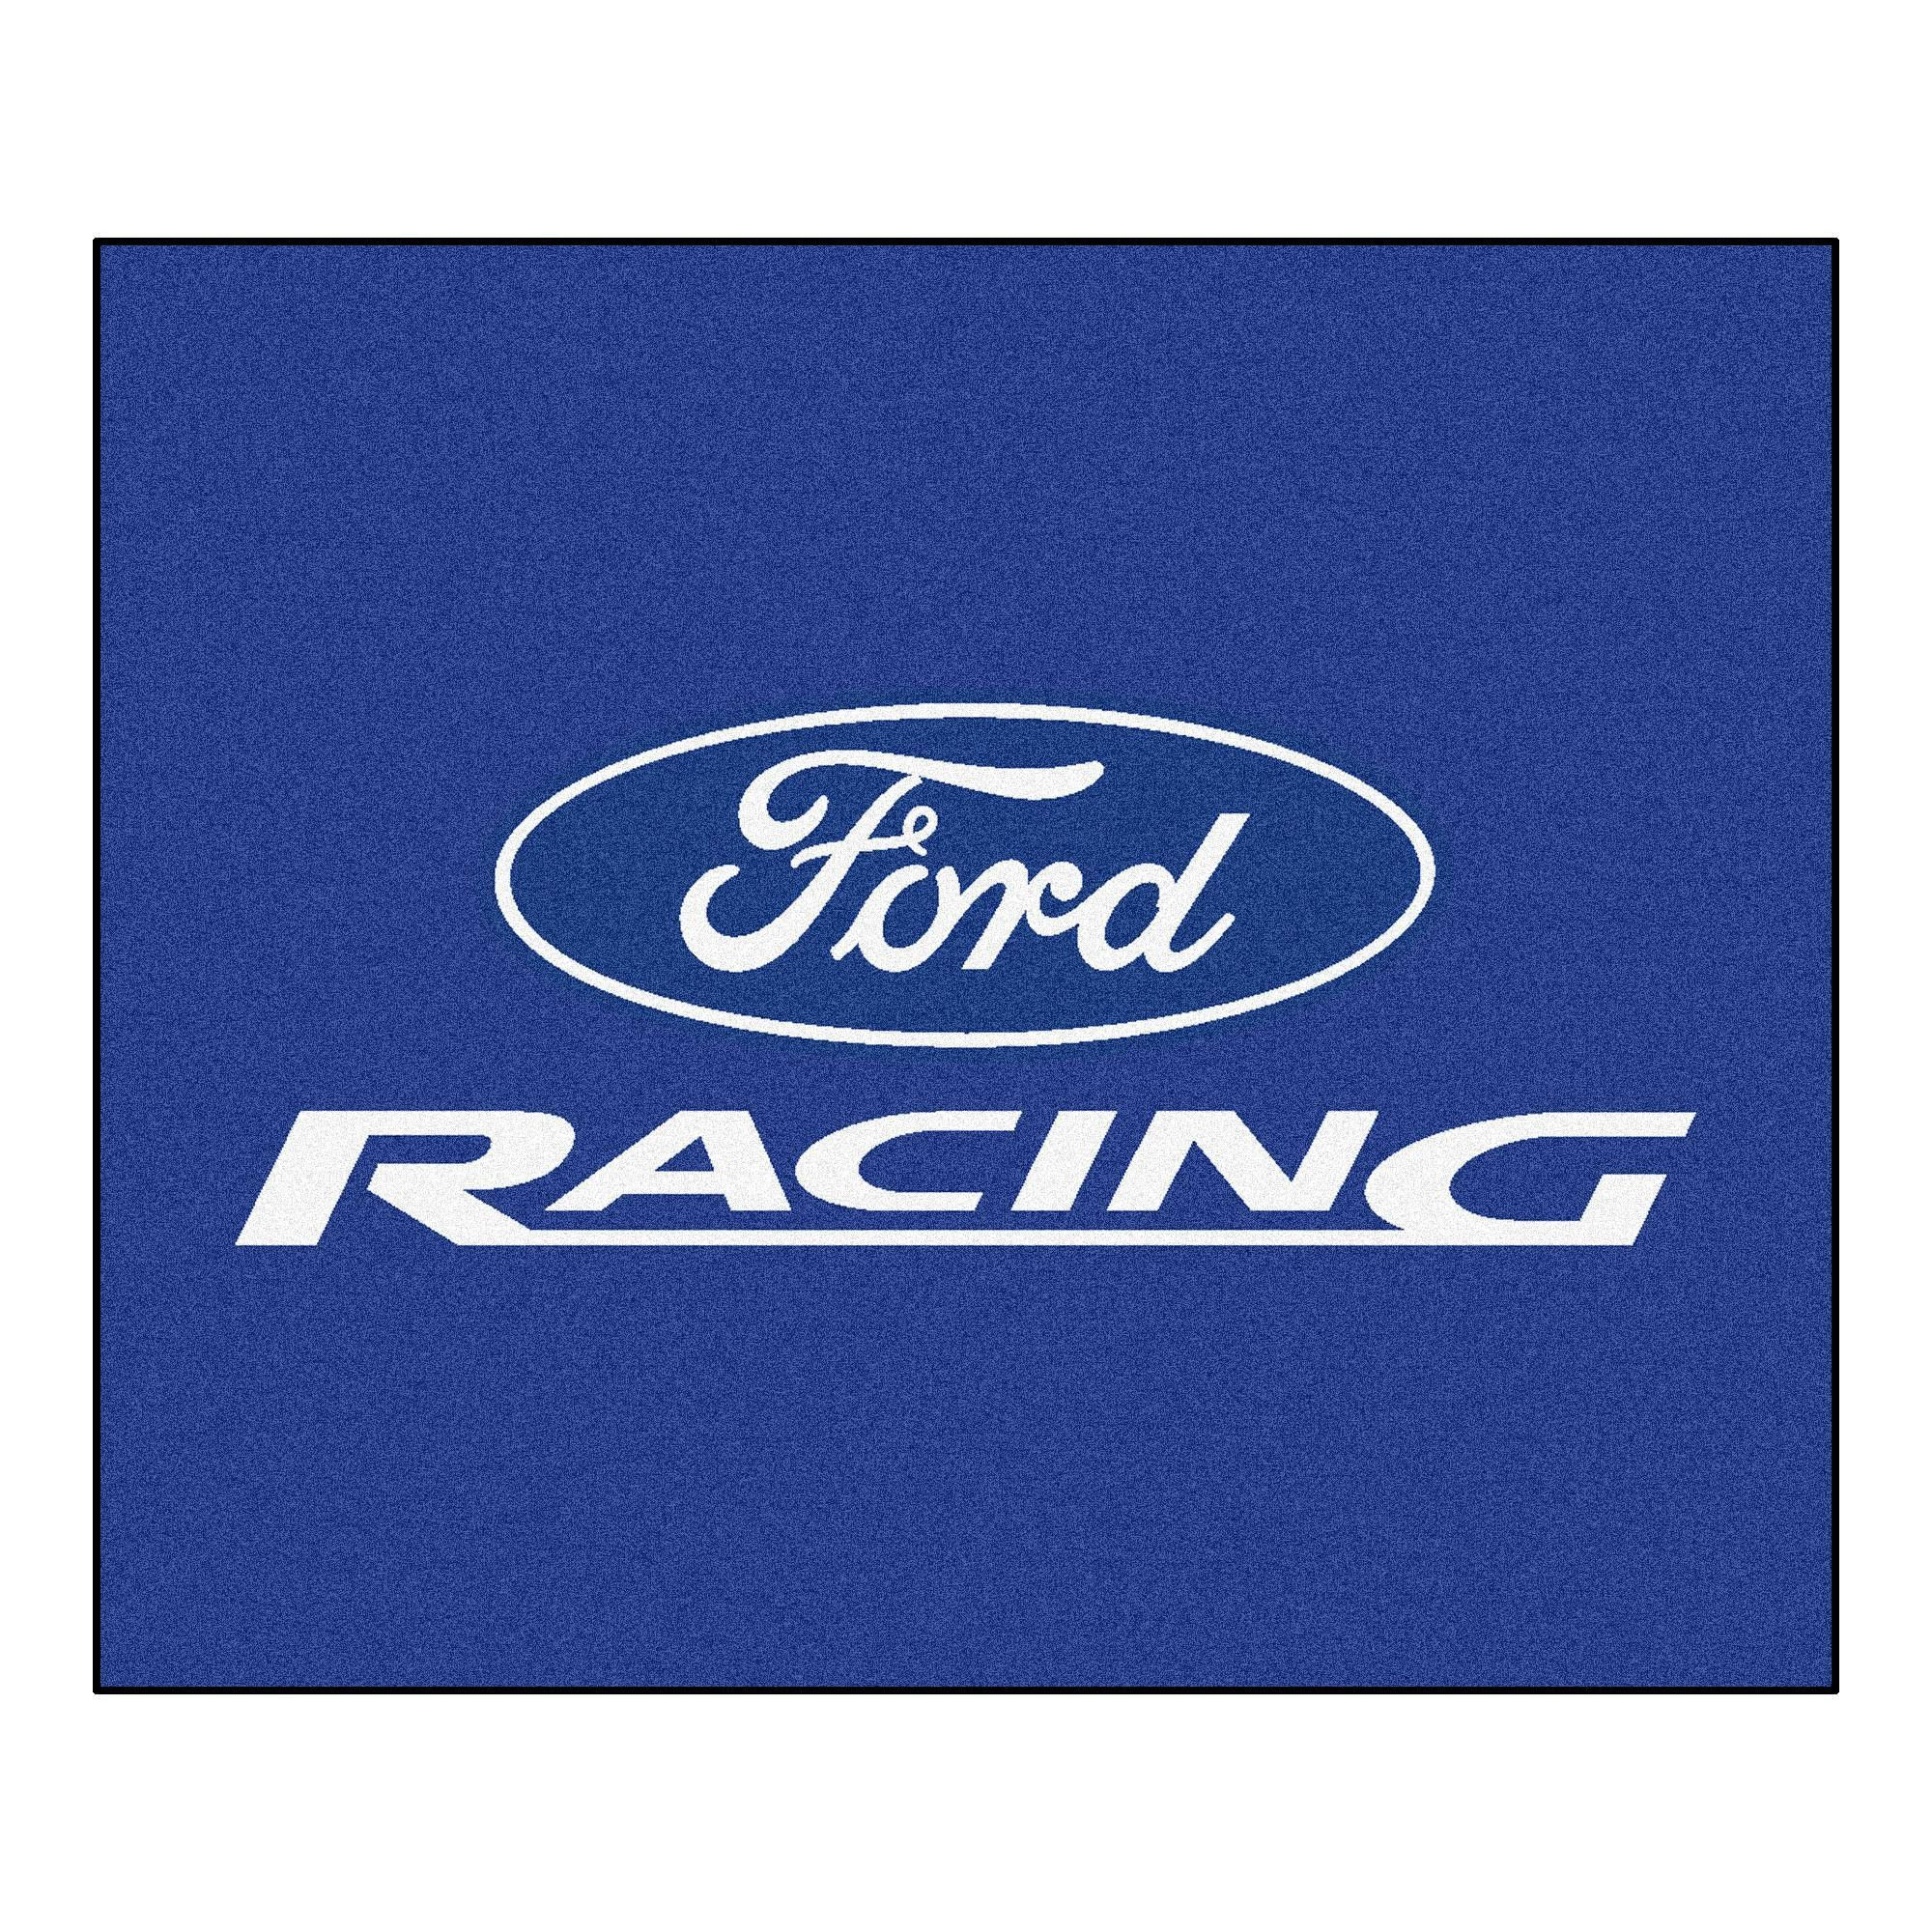 Ford Racing Tailgater Rug 5x6 - Blue